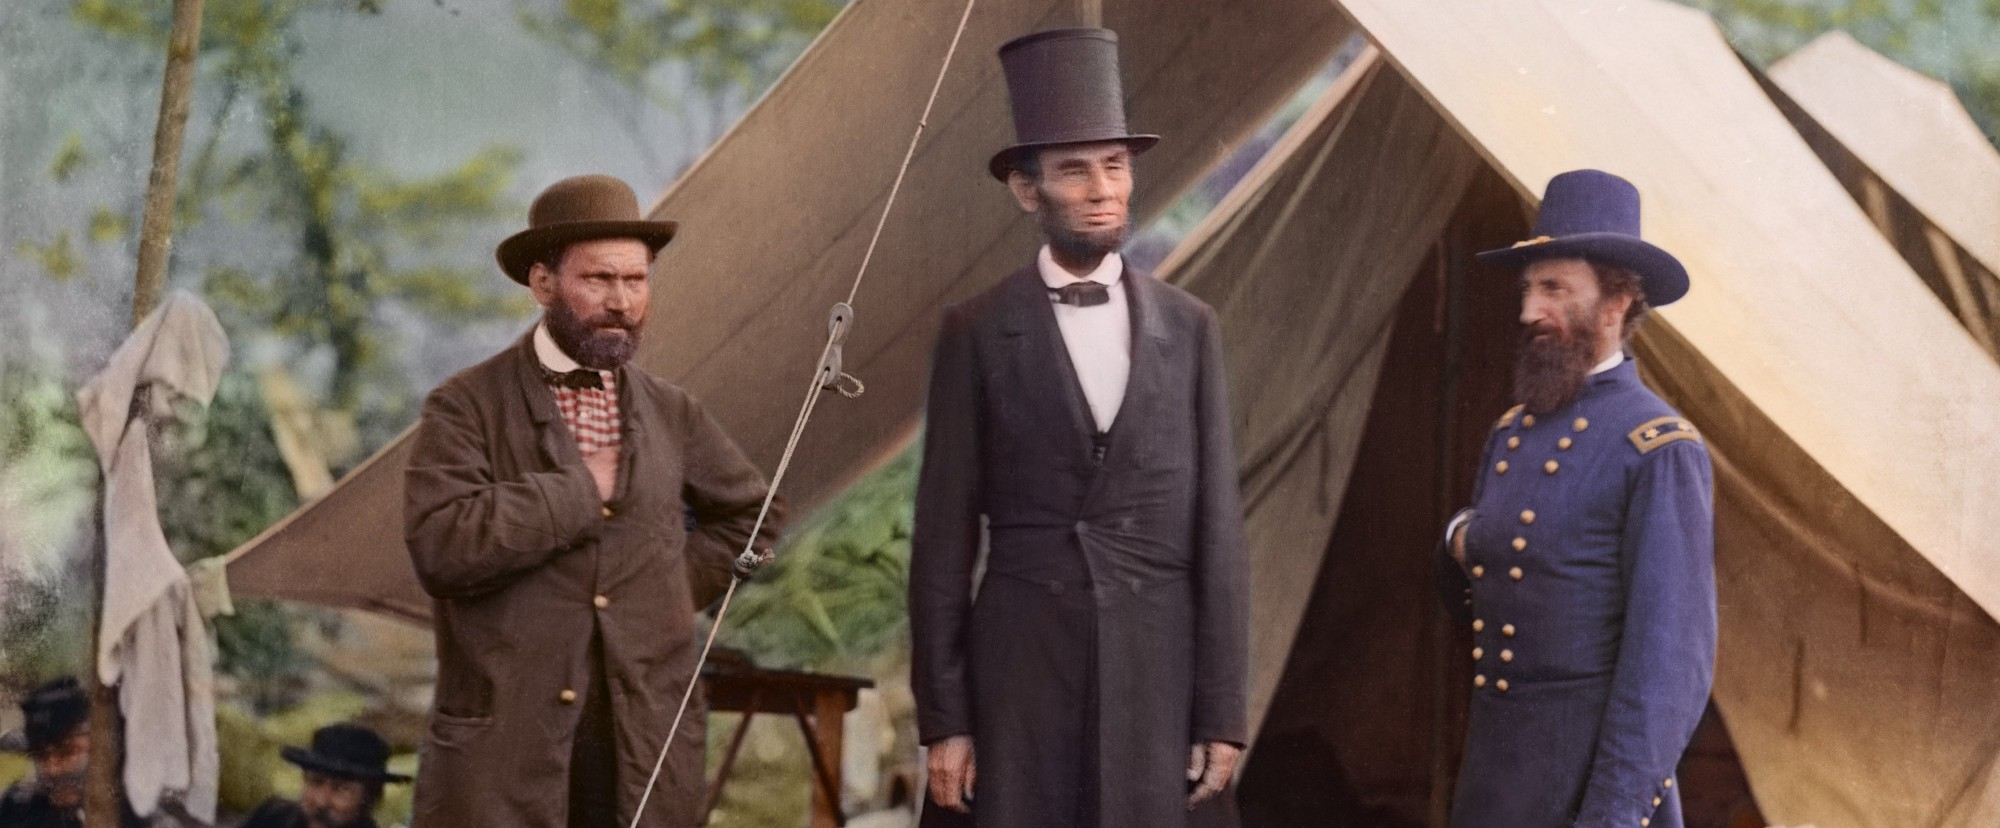 a study of the life and administration of abraham lincoln Indeed, nowhere was the effect of abraham lincoln's transformative leadership illustrated more sharply than in soldiers' changed attitudes toward emancipation.